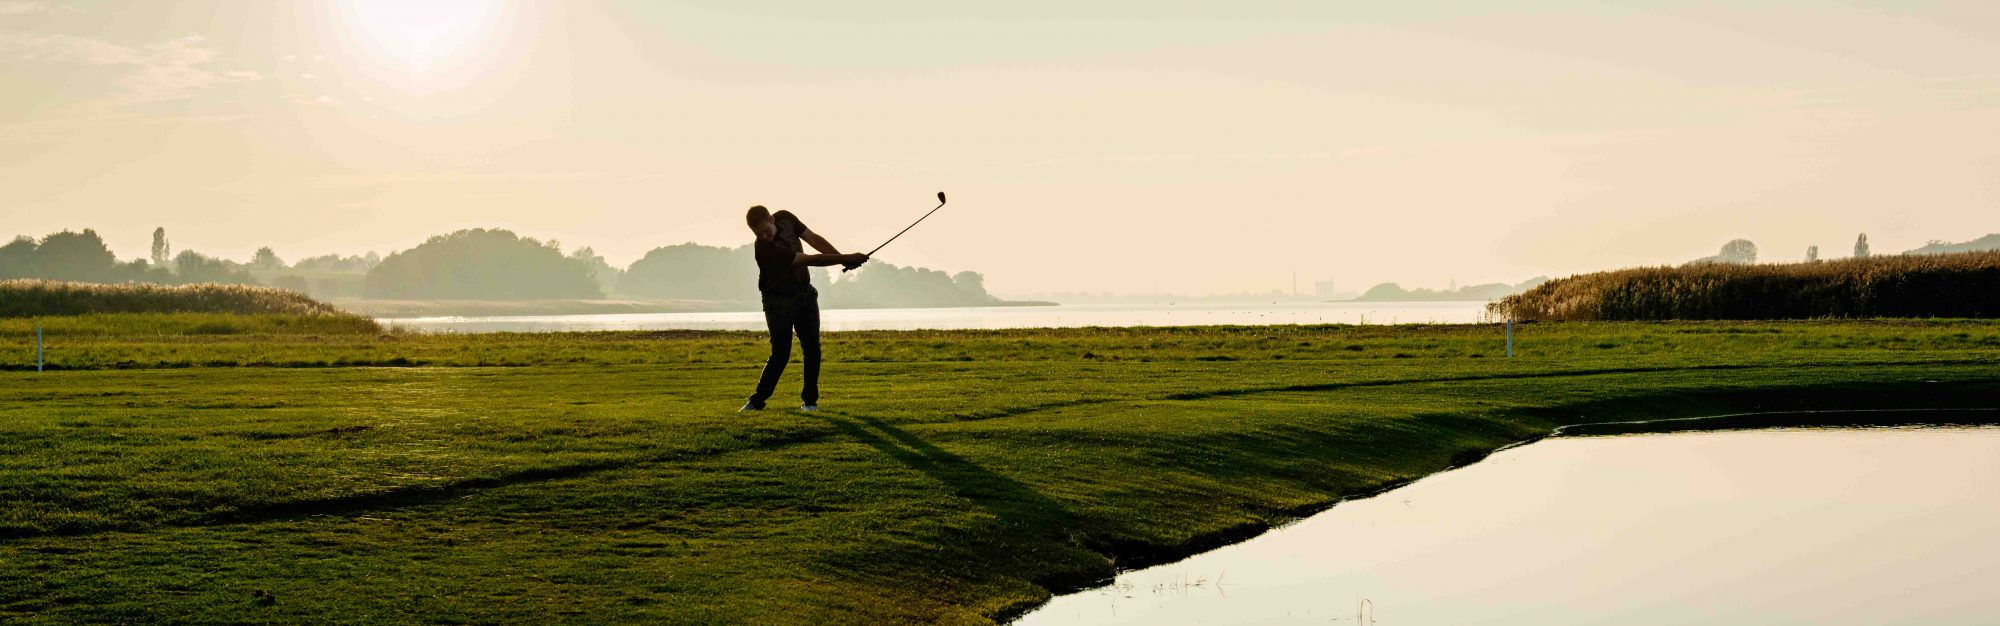 Is it safe to play golf during the coronavirus outbreak?